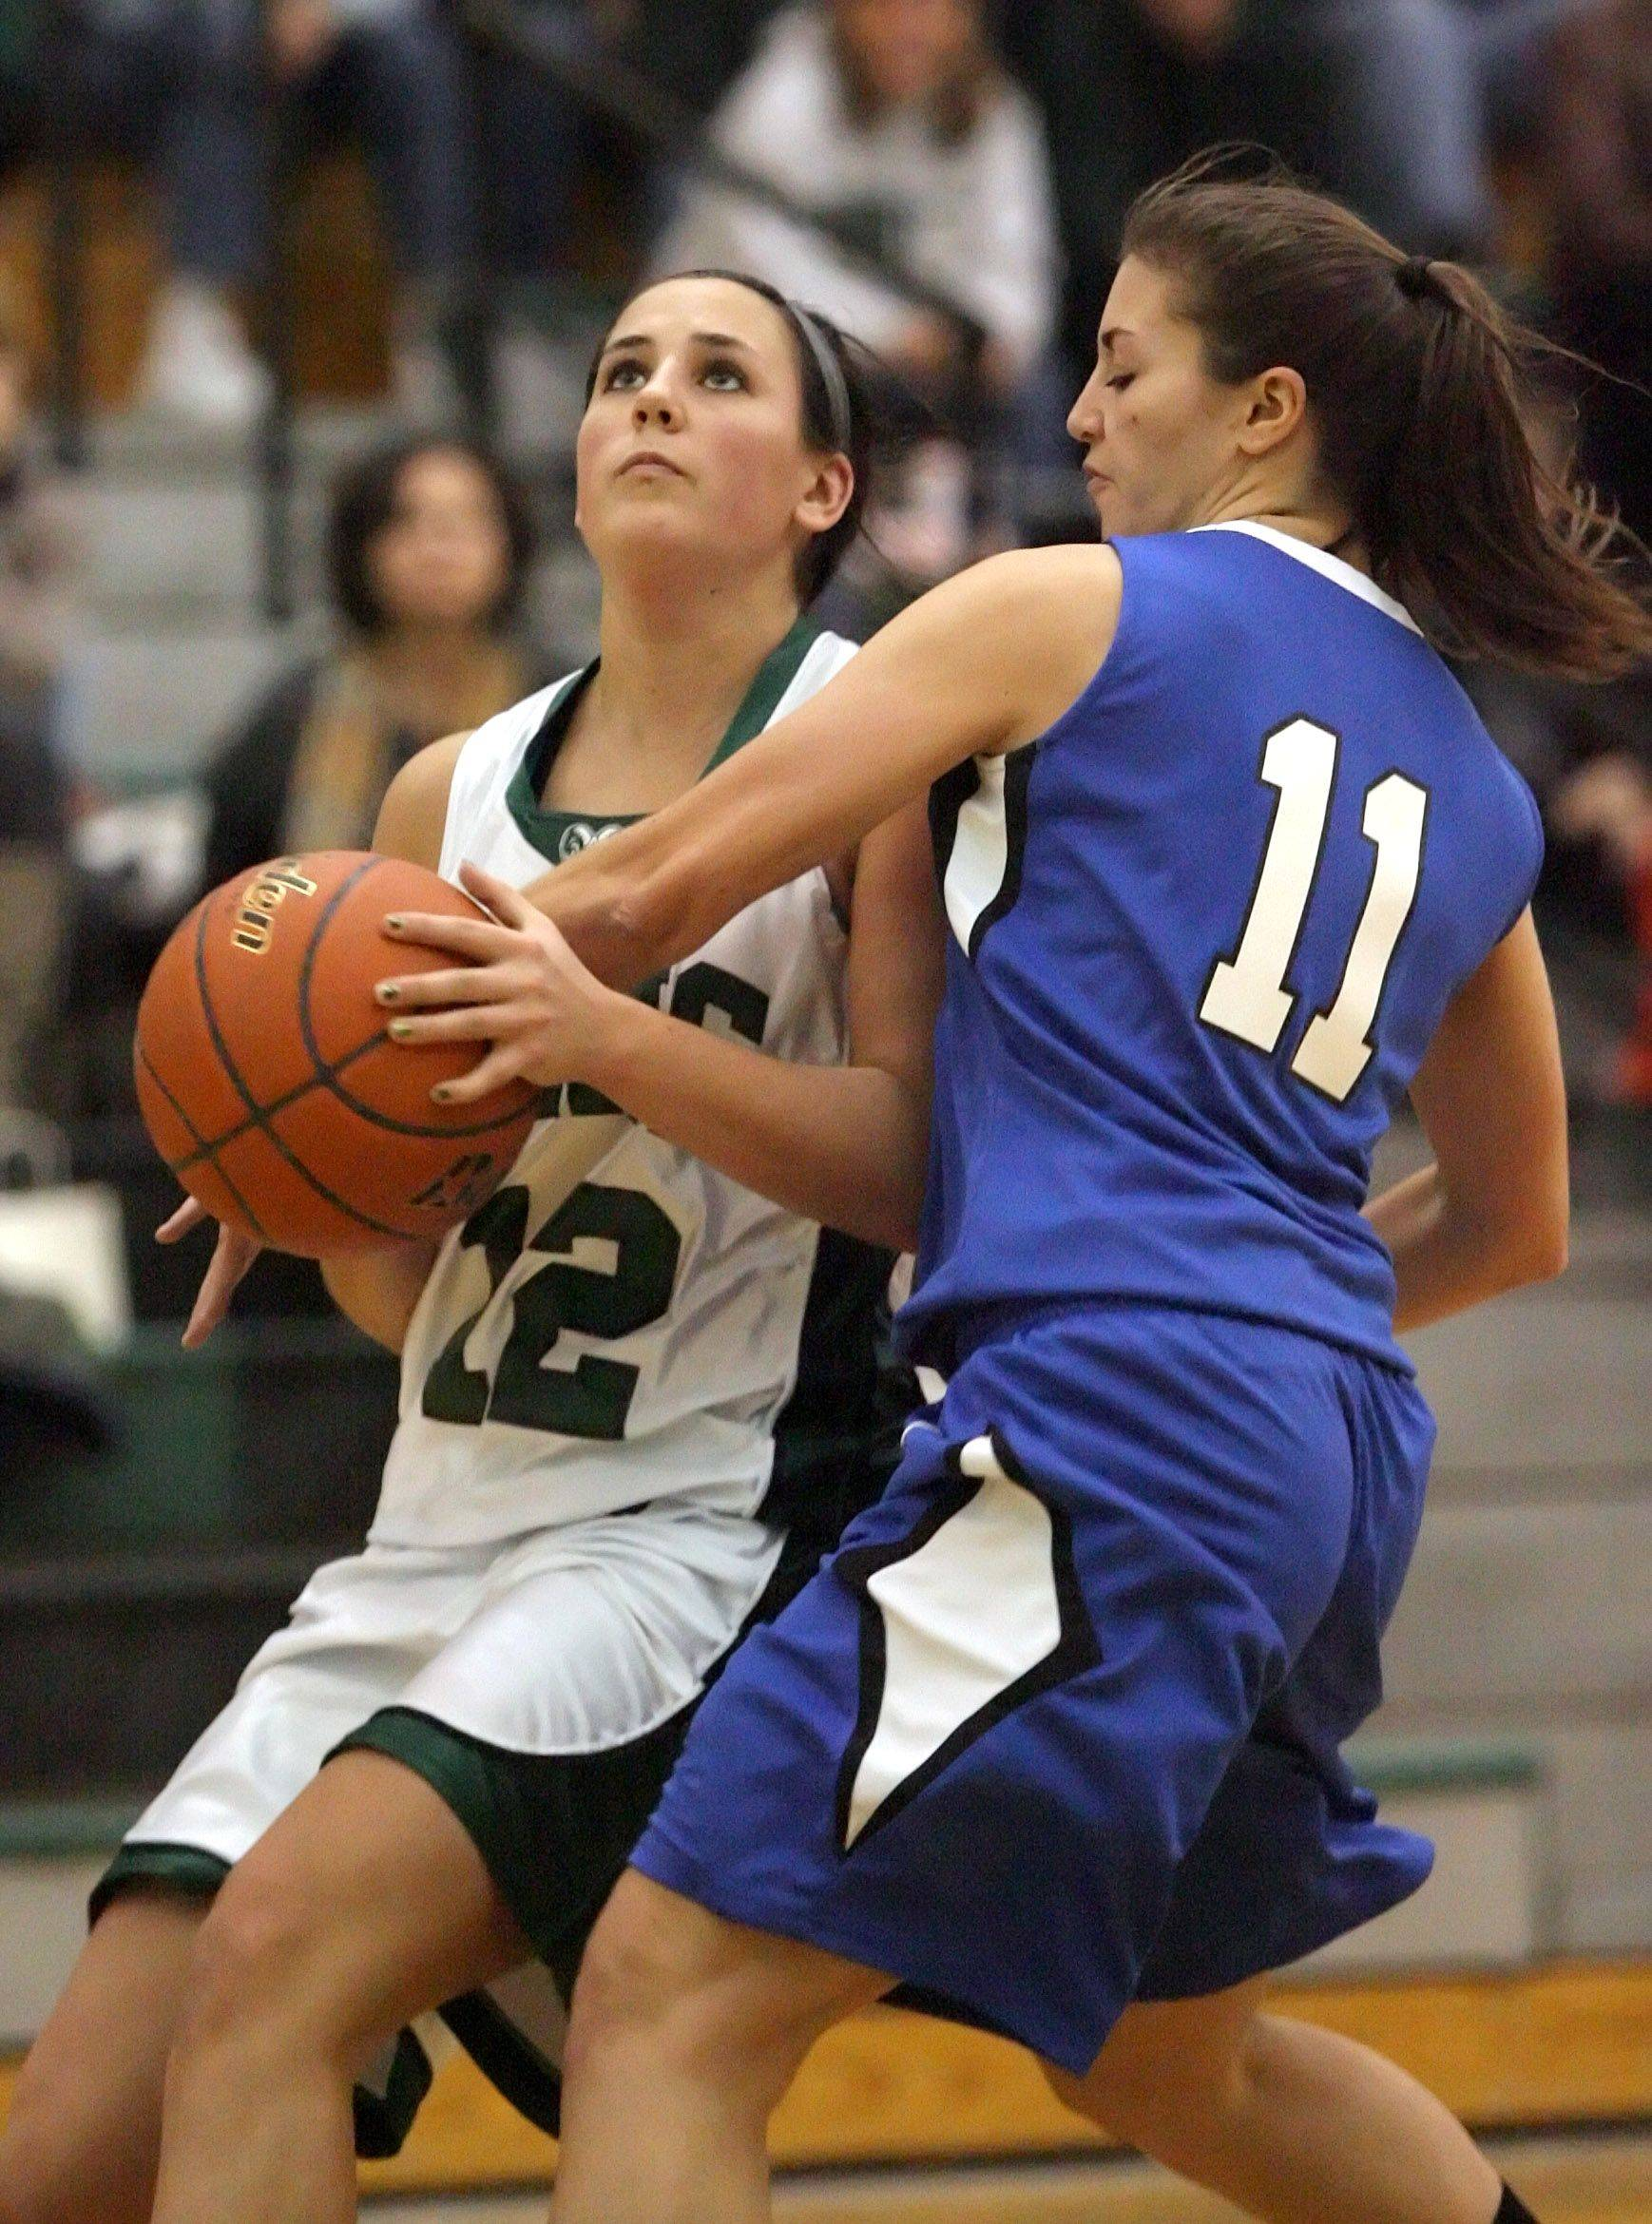 Grayslake Central's Claire Brennan, left, drives on Woodstock's Odessa Peters on Tuesday night at Grayslake Central.